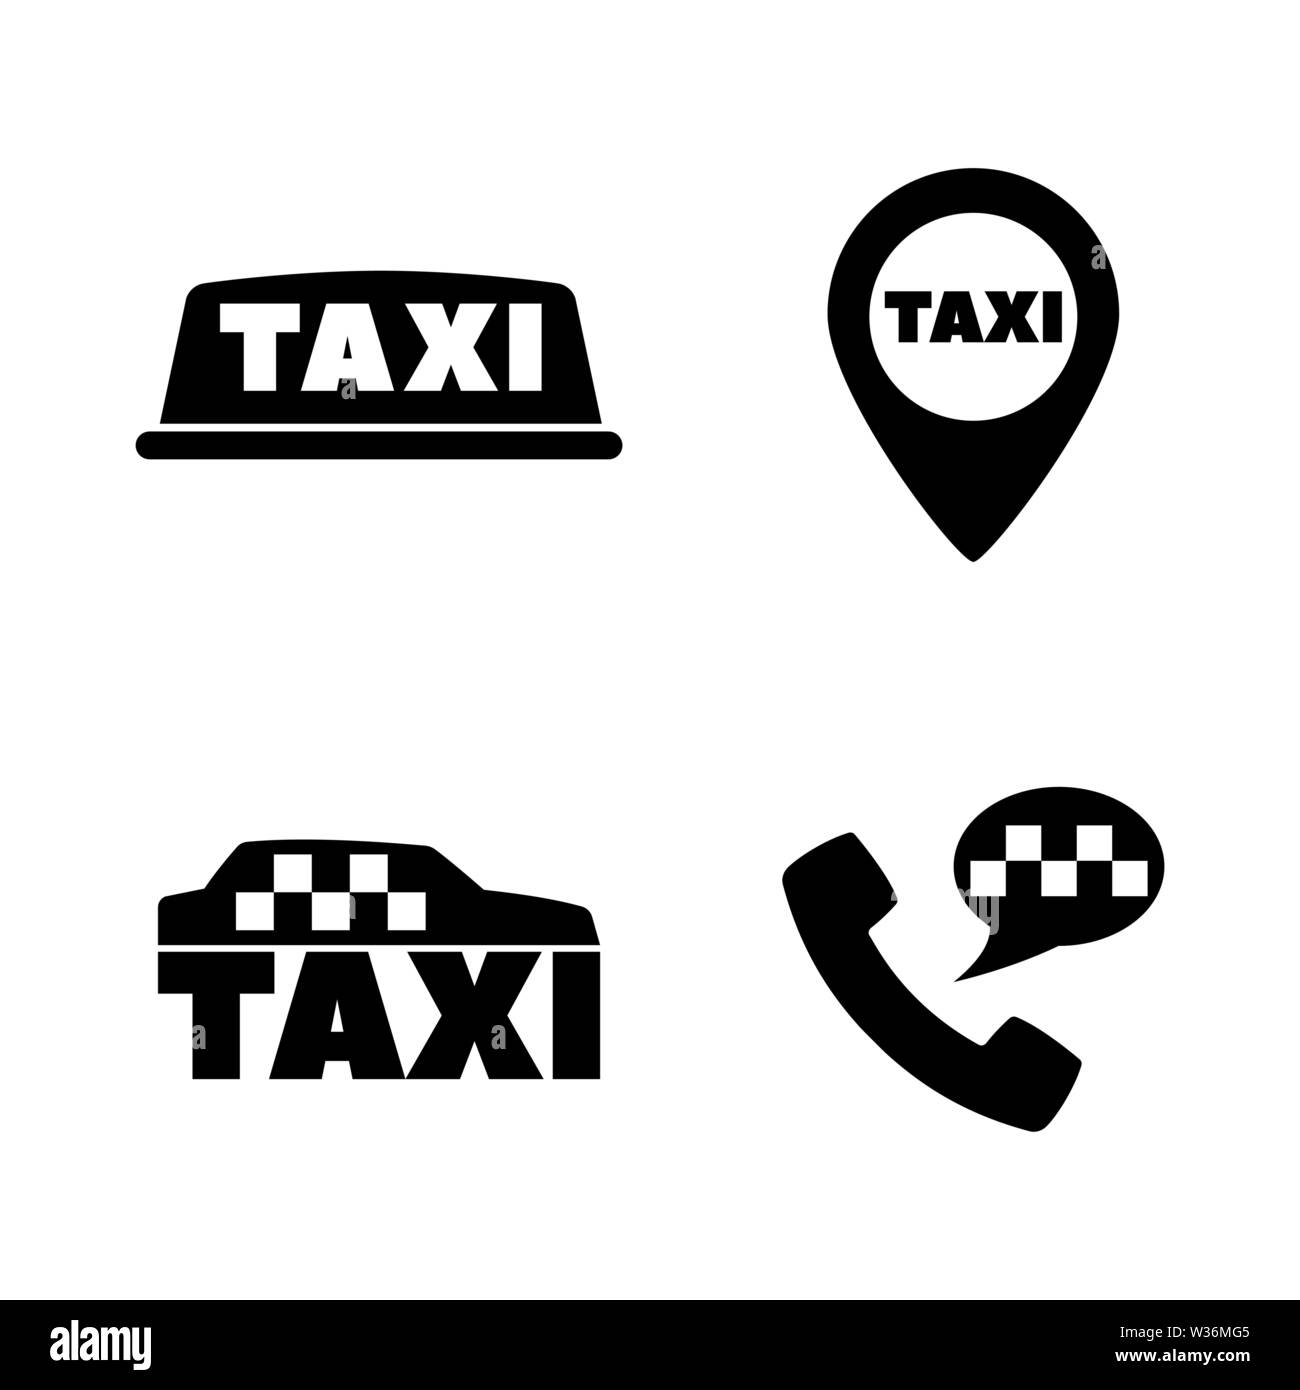 Taxi Car, Call Service. Simple Related Vector Icons Set for Video, Mobile Apps, Web Sites, Print Projects and Your Design. Taxi Car, Call Service icon - Stock Image